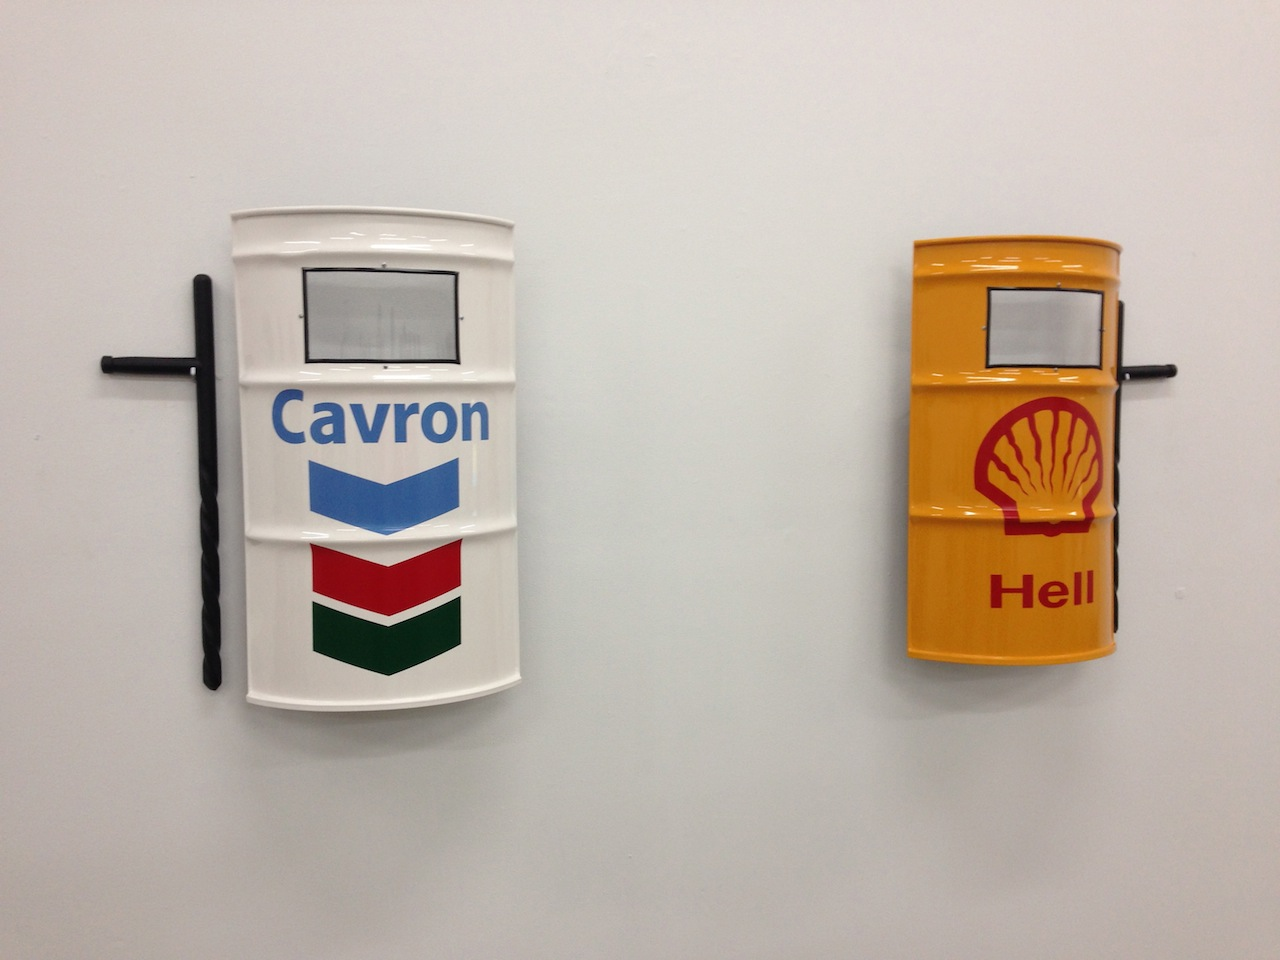 "Marco Ramirez ERRE, ""Petrochinga"" (2014), riot shield made of a recycled oil barrel, 23 x 34 inches"